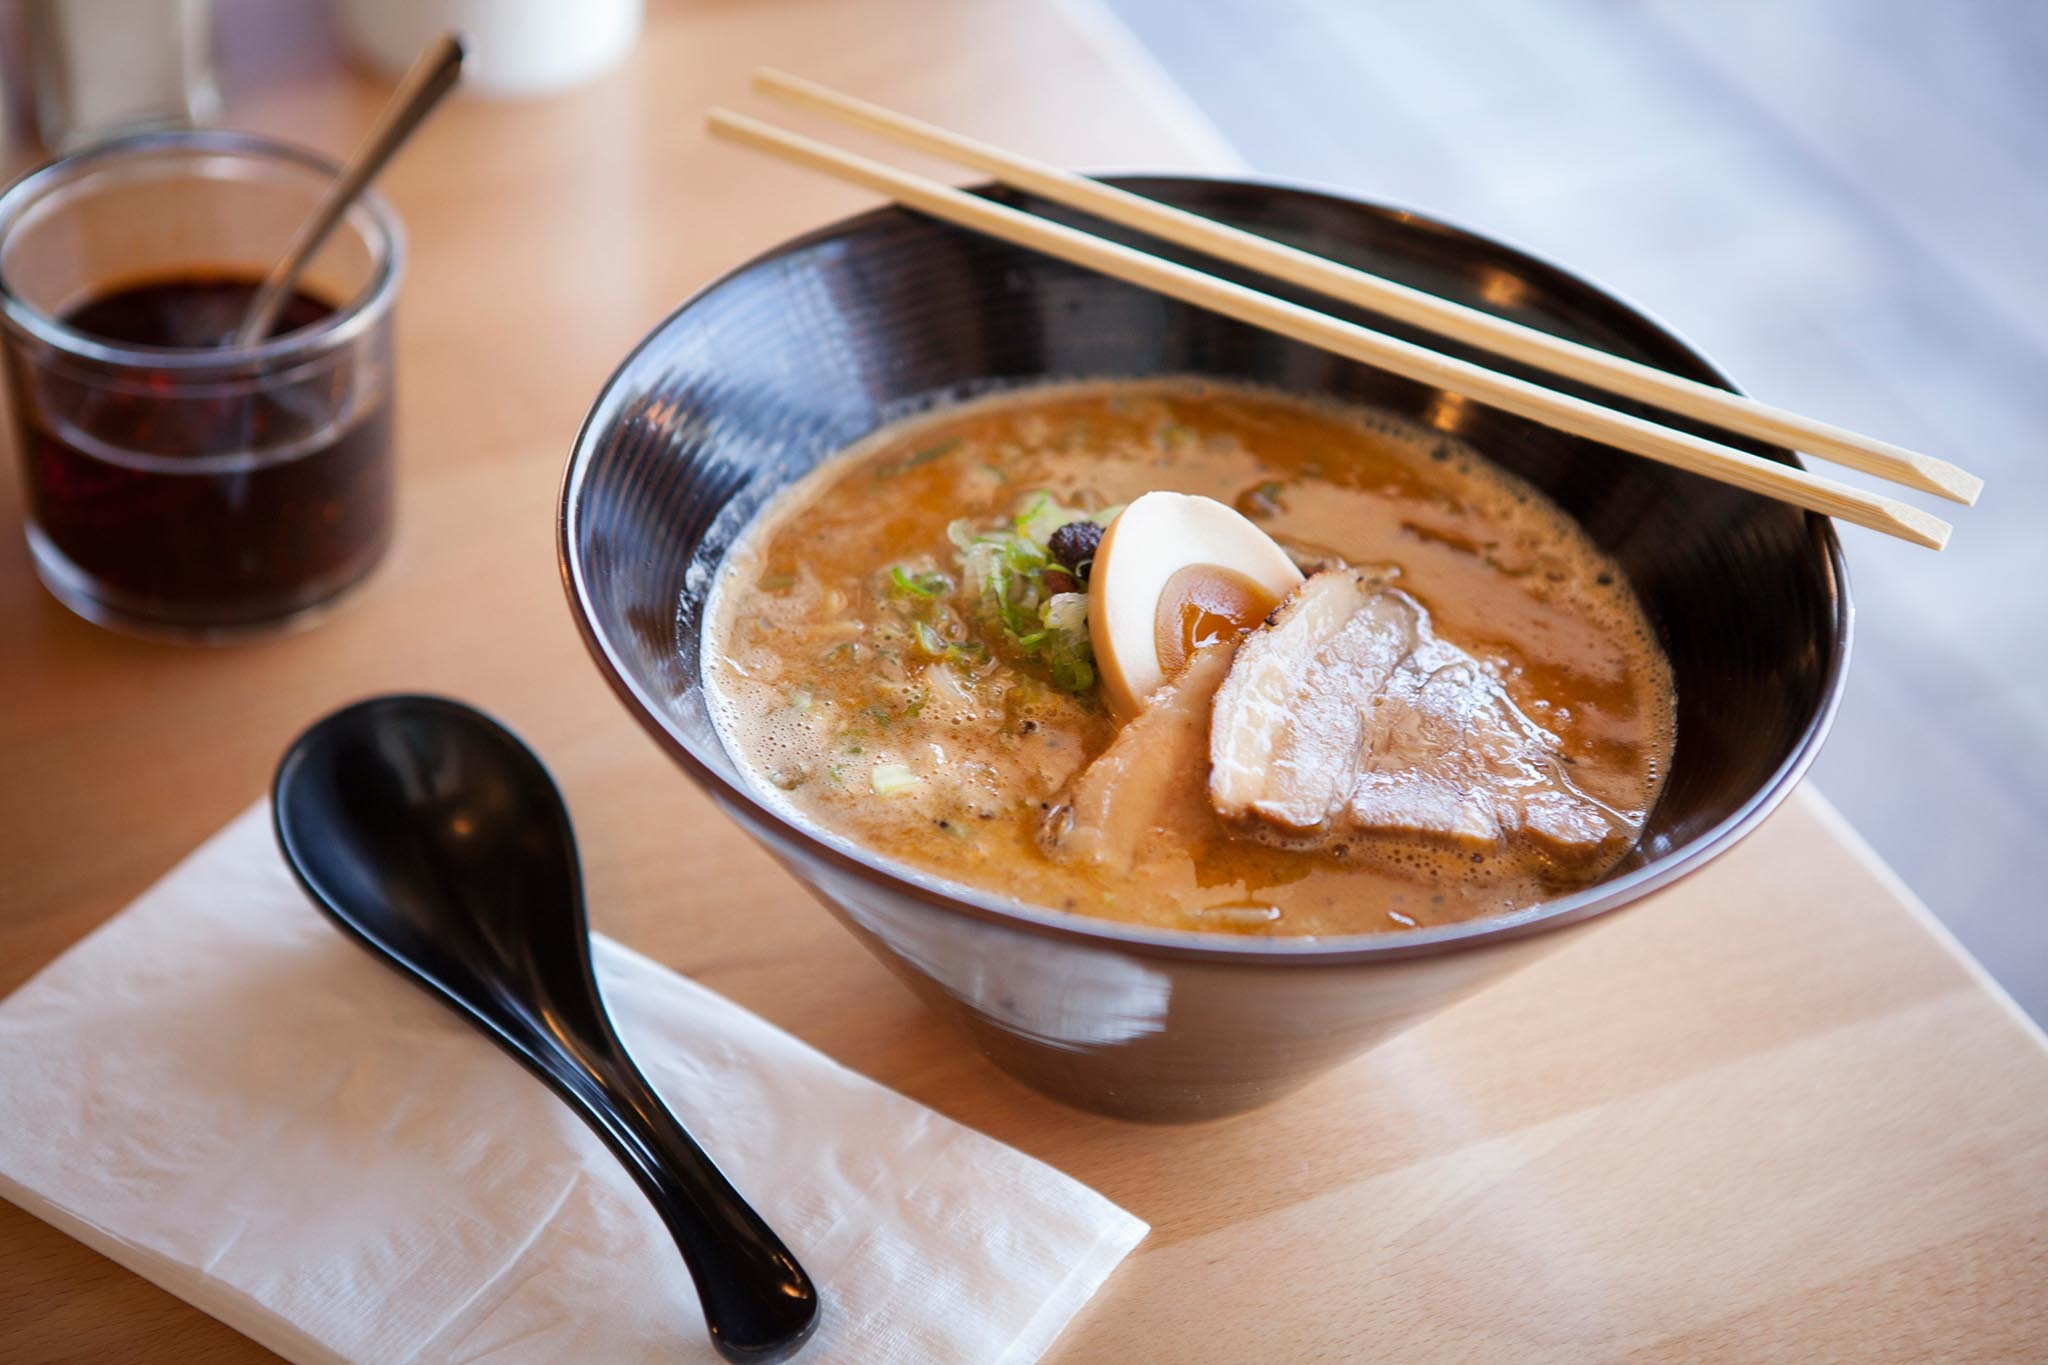 Burnt pork kogashi miso ramen at Ramen by Omae